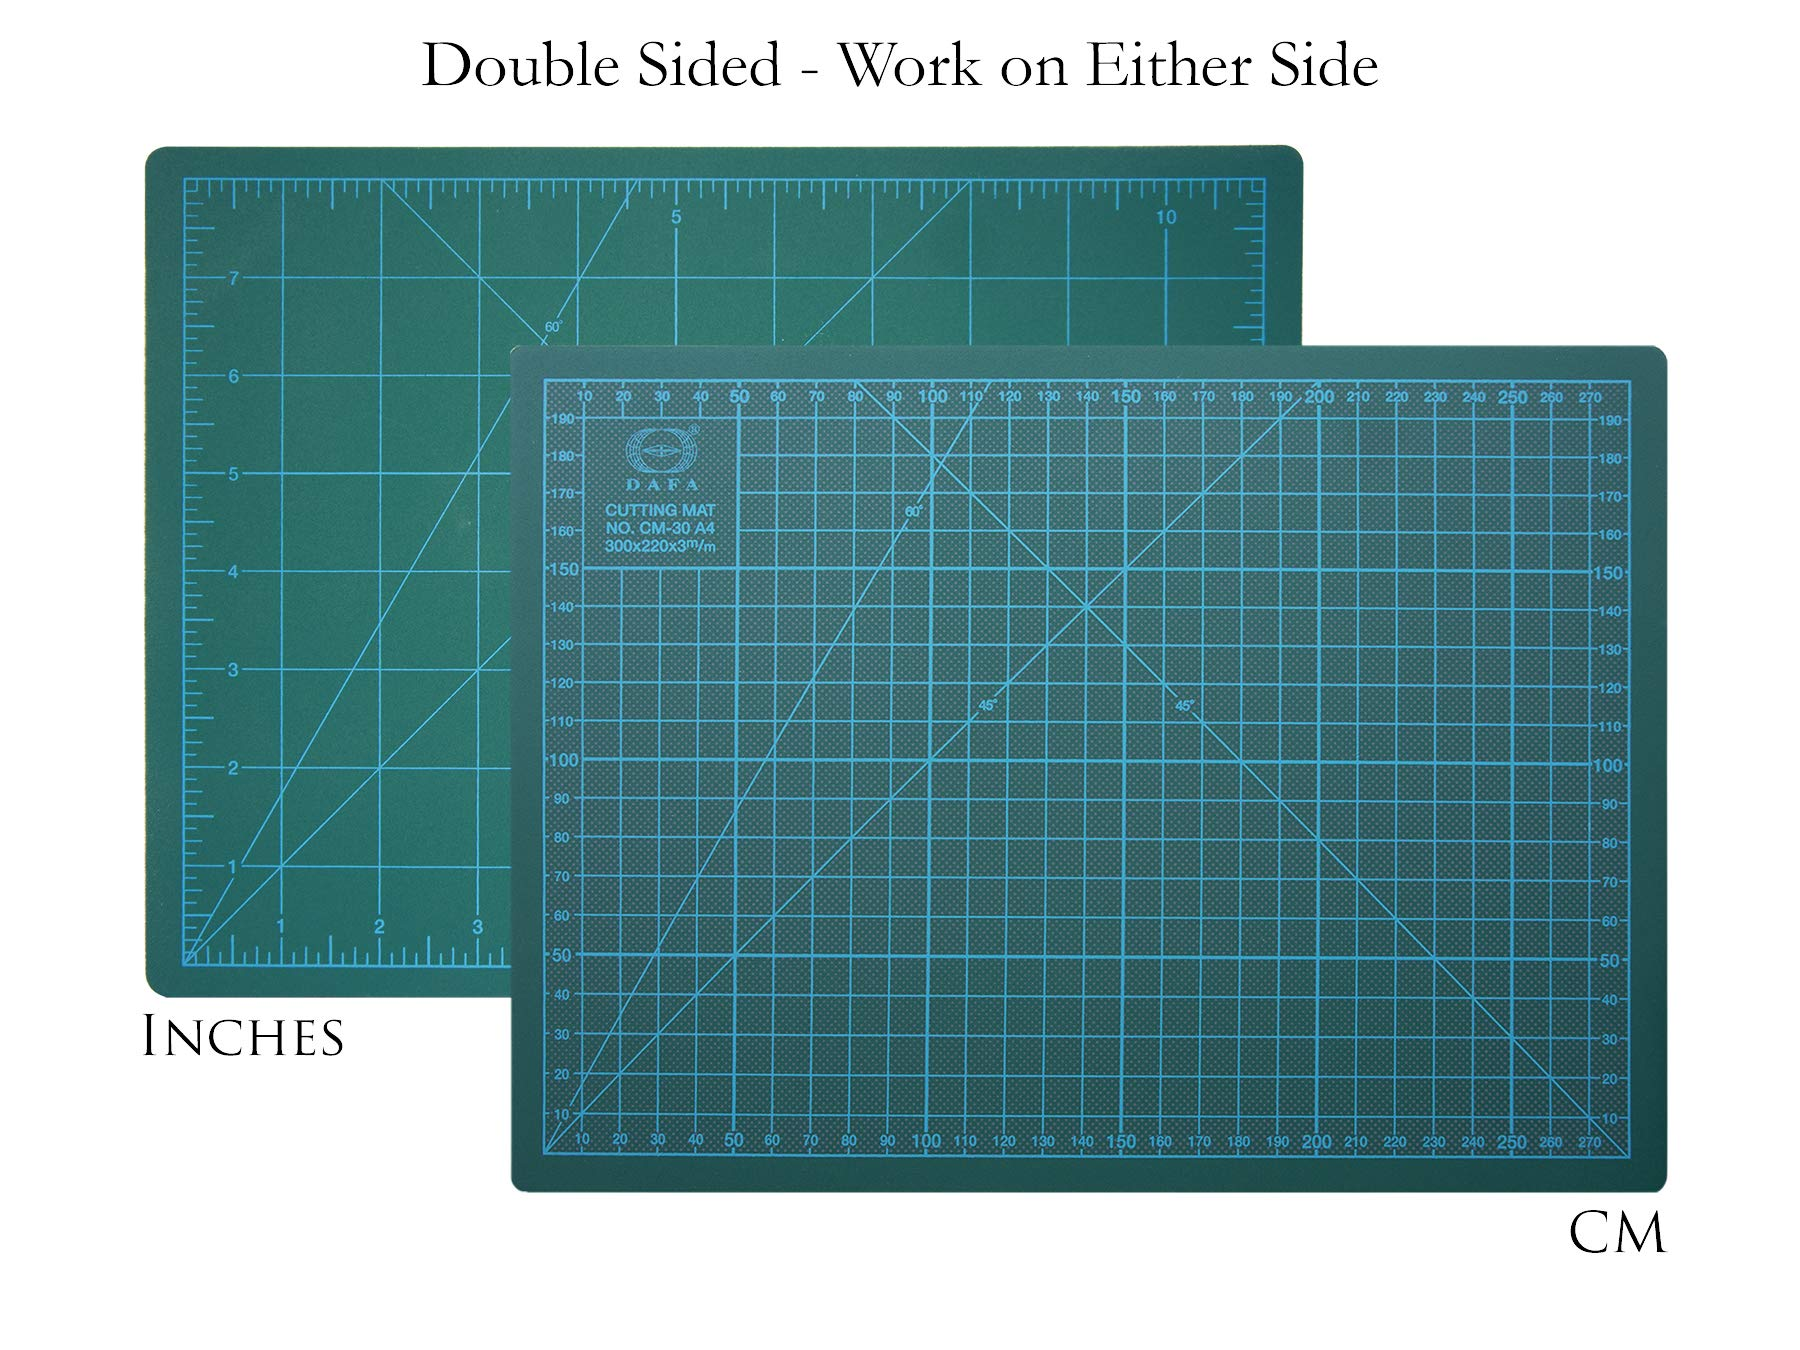 DAFA Professional 36'' x 24'' Self-Healing, Double-Sided Cutting Mat, Rotary Blade Compatible, (36x24), (24x18), (18x12), (12x9) Sizes, for Sewing, Quilting, Arts & Crafts by DAFA (Image #3)